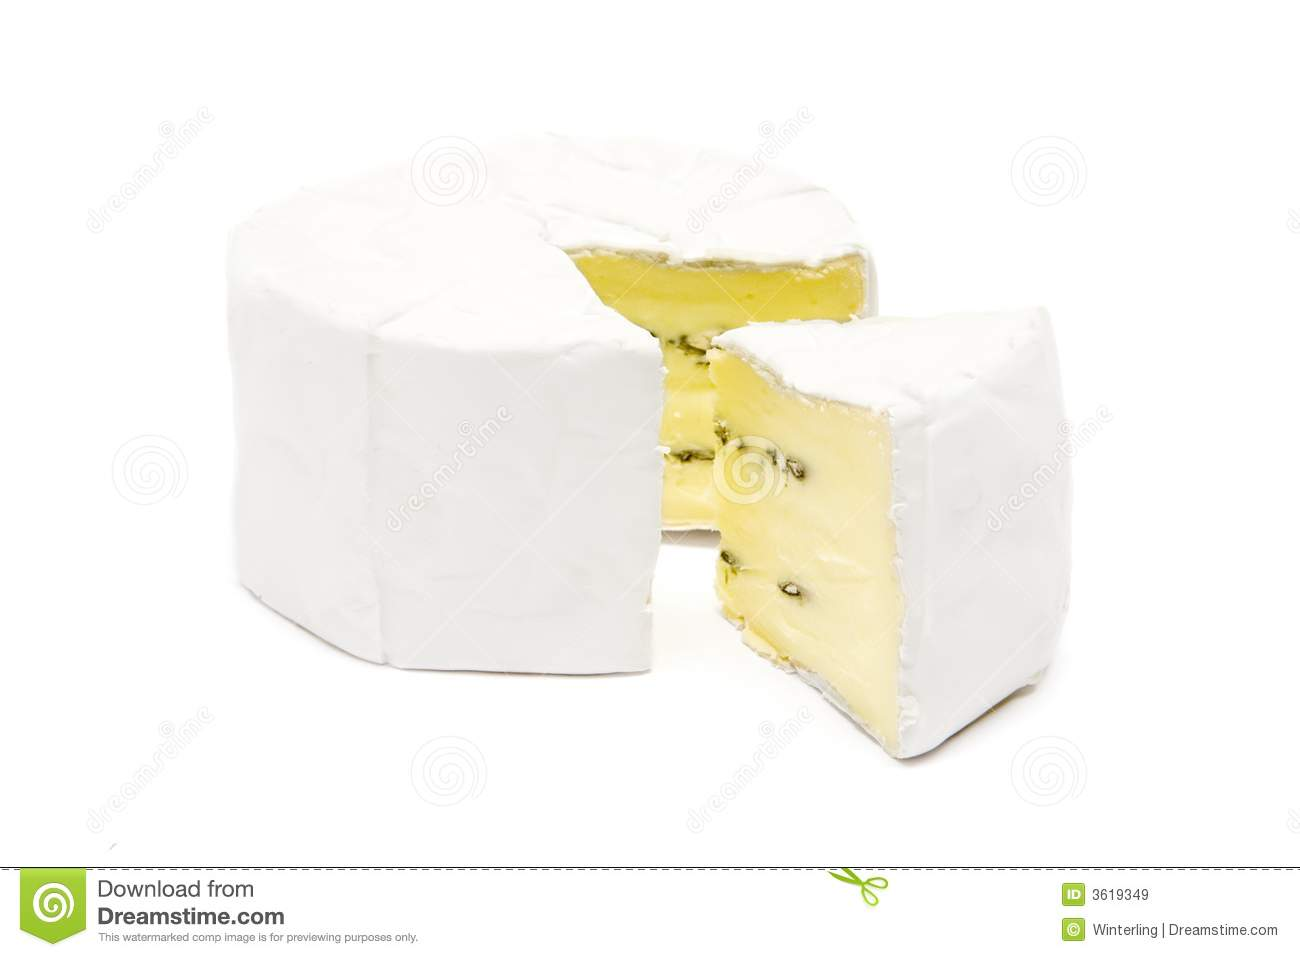 how to cut soft cheese